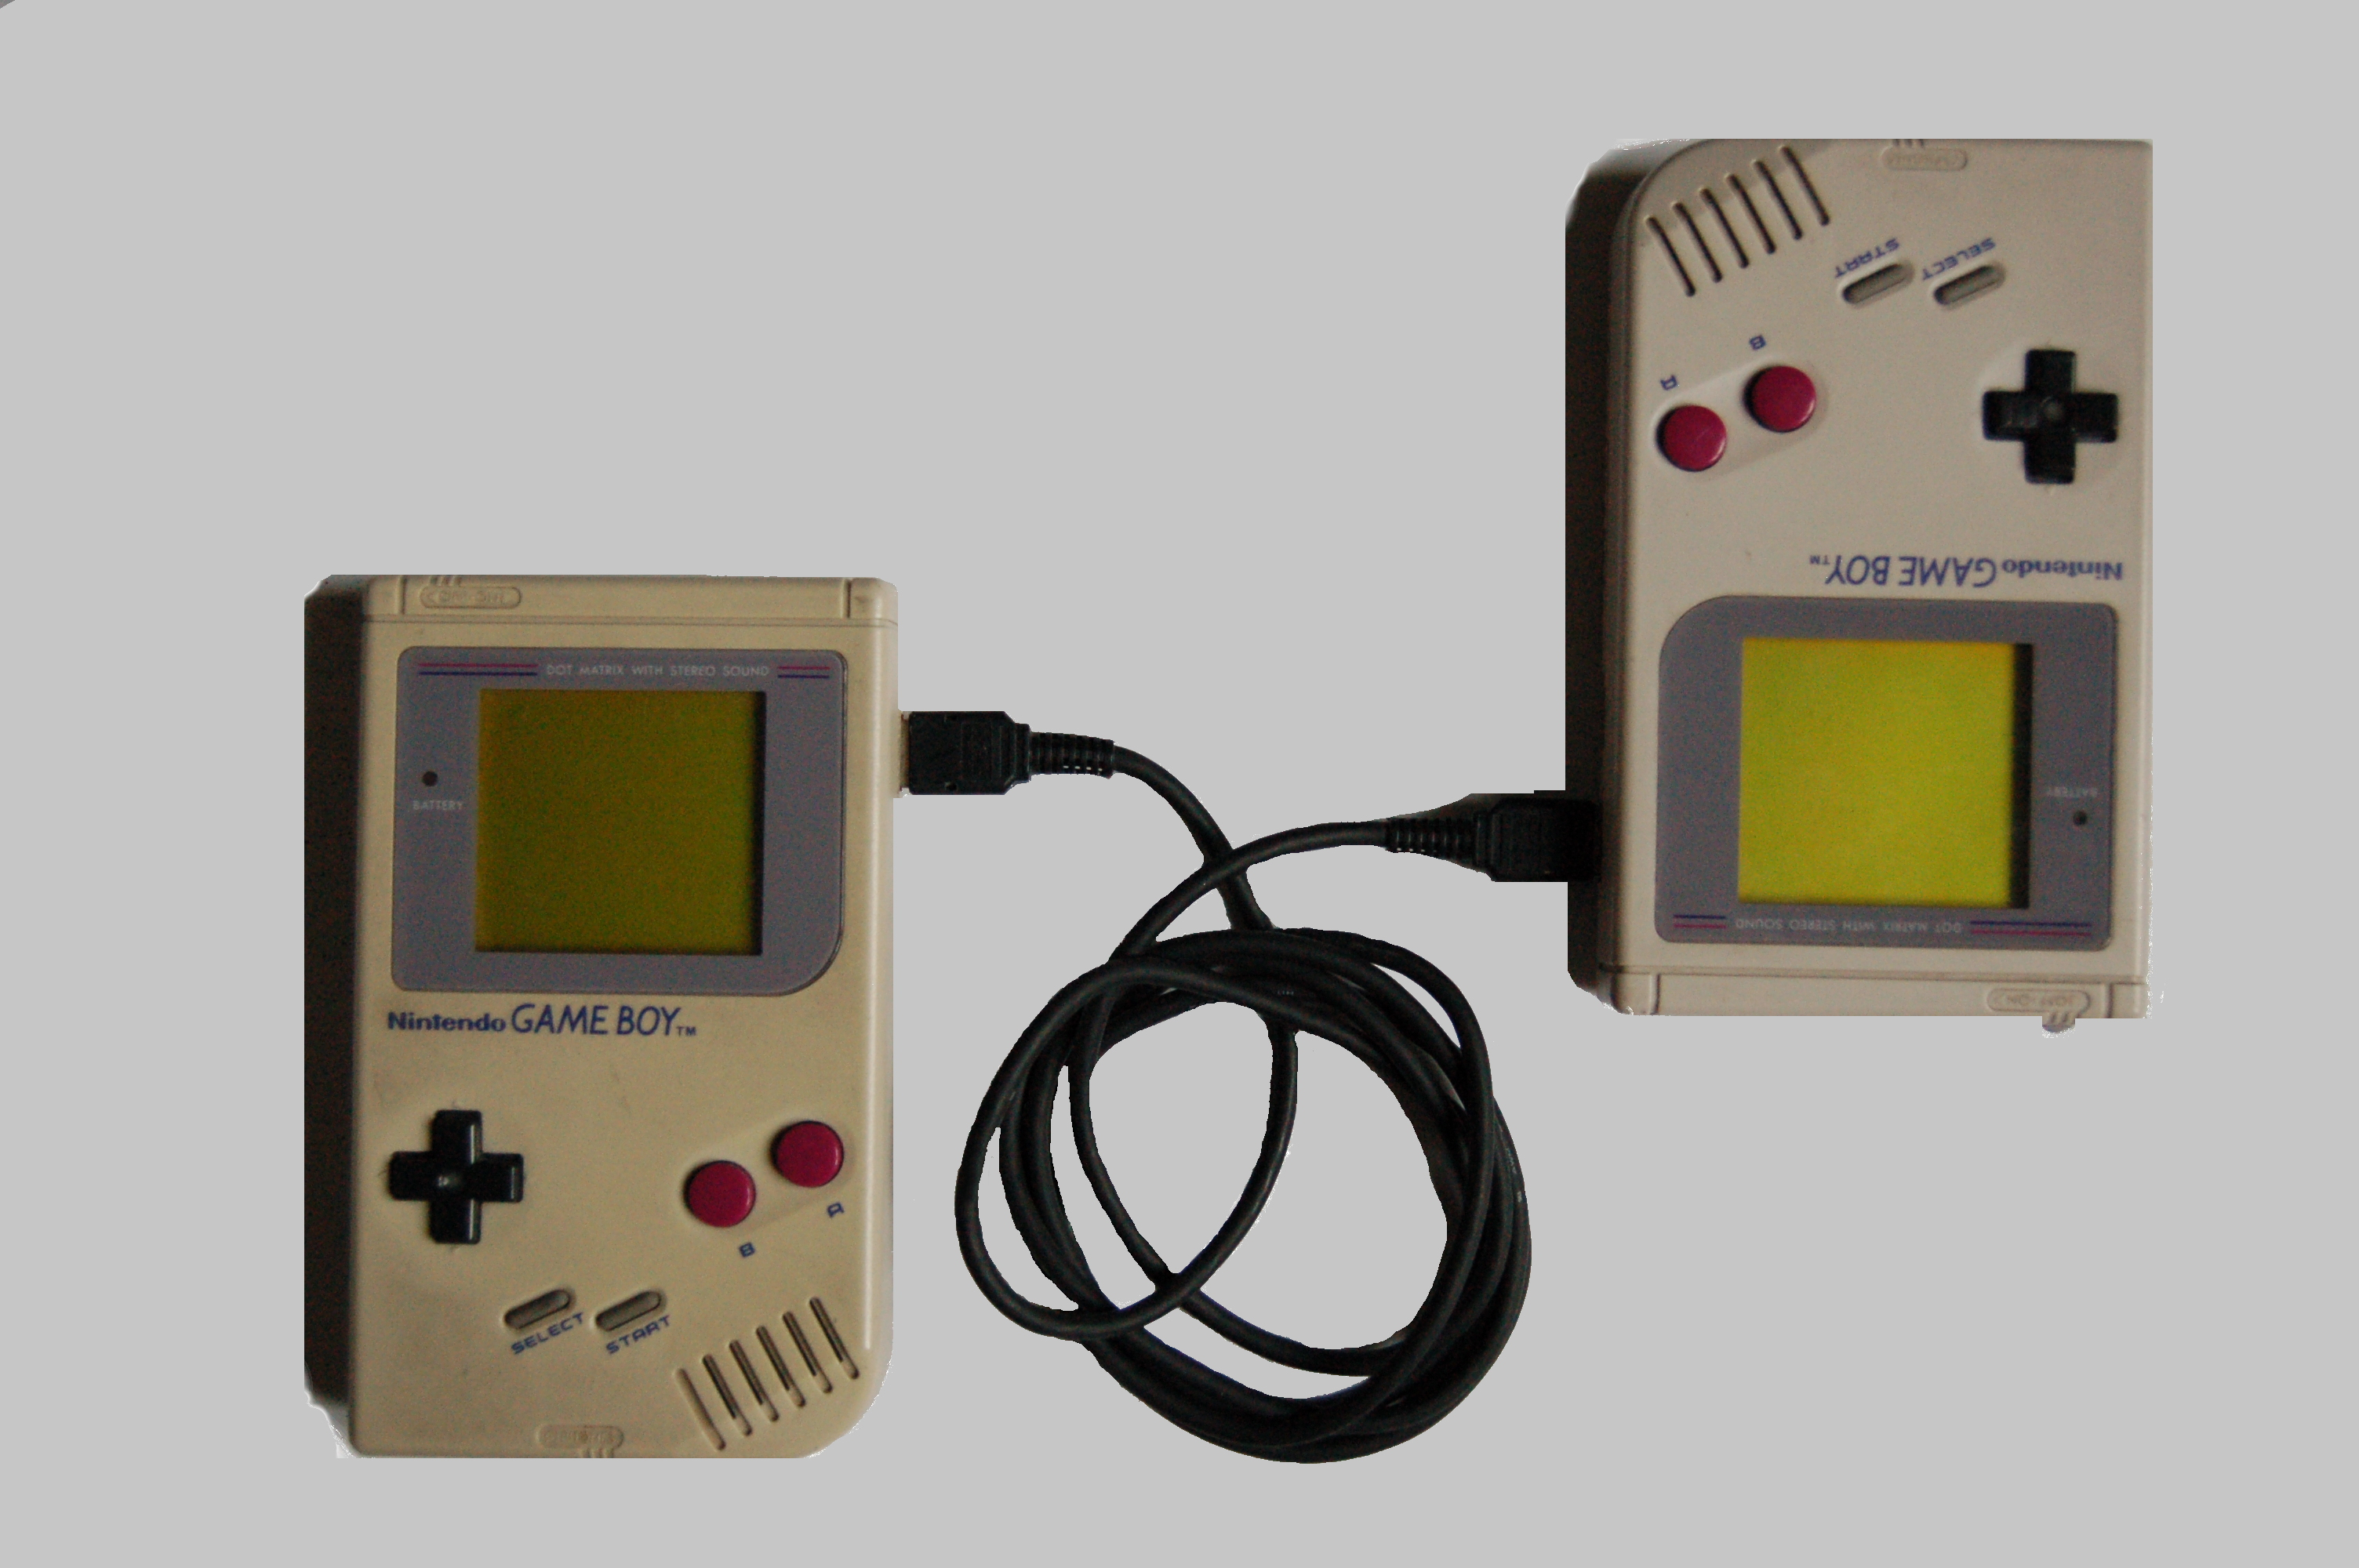 Duo gameboy Pokemon: The Mega Franchise That Almost Never Was